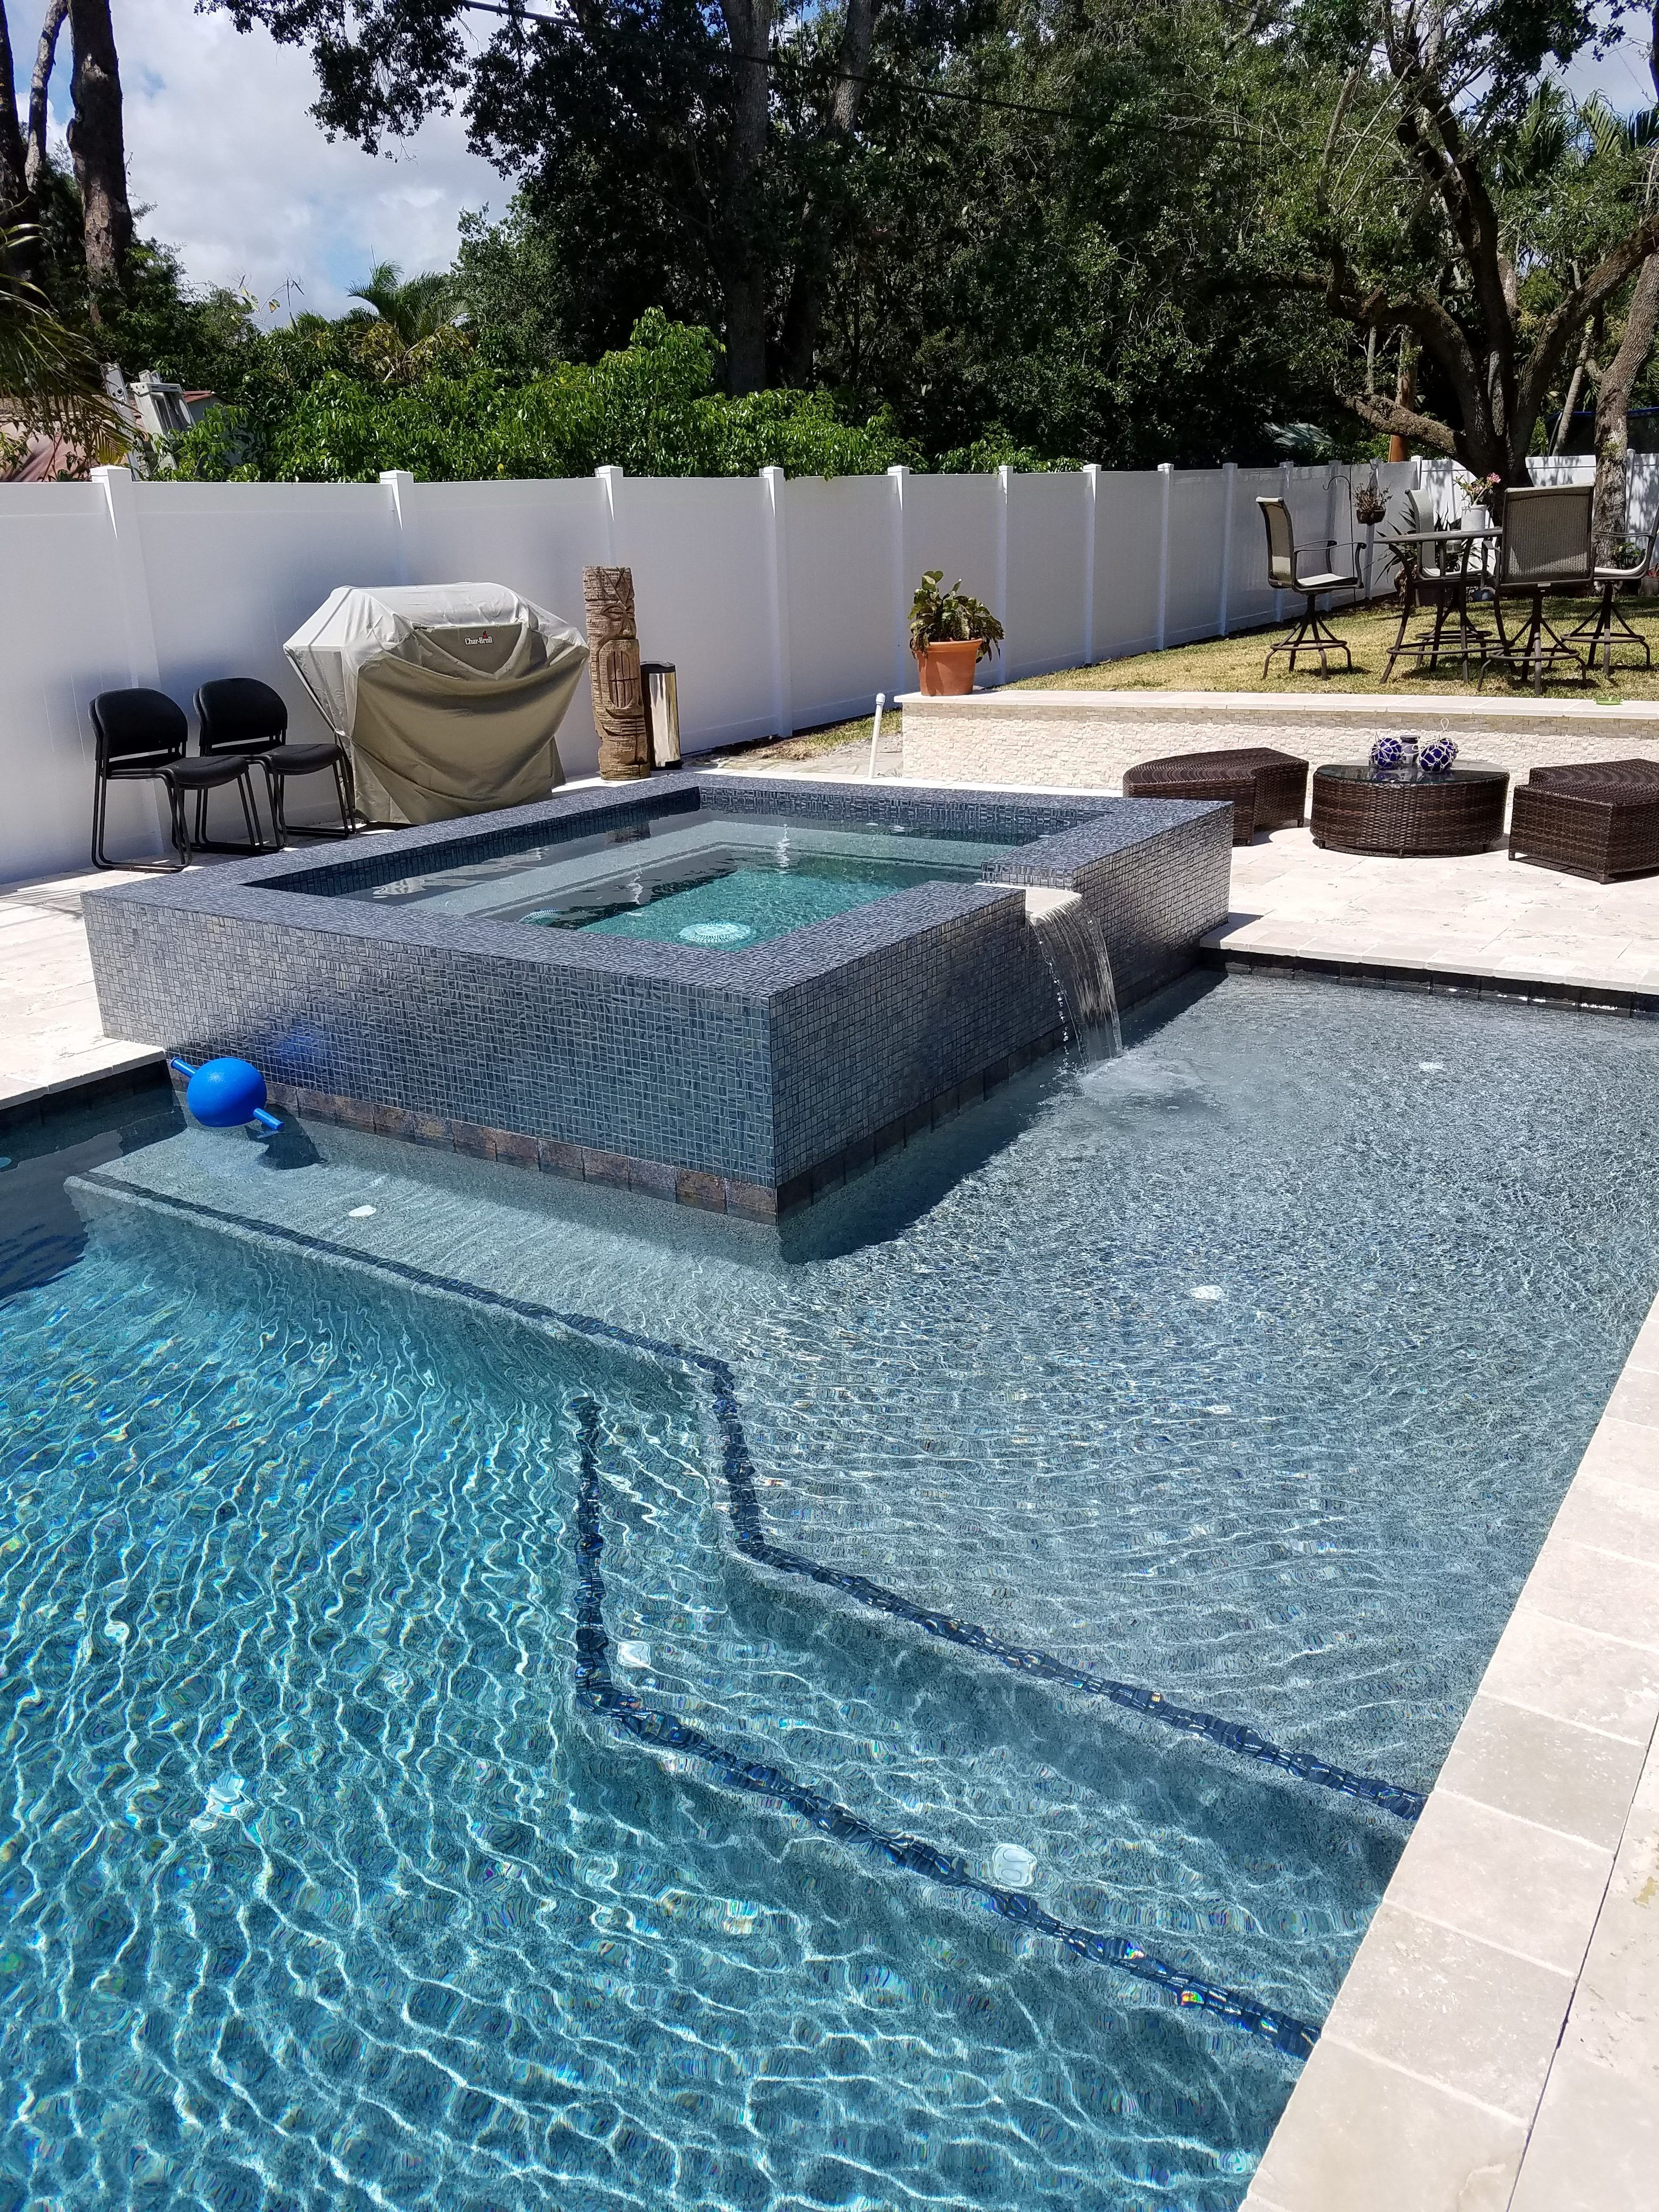 Landscaping Swimming Pool Ideas This A Small Swimming Pool Design With A Disappearing Edge And Also A S Modern Pool And Spa Luxury Swimming Pools Modern Pools